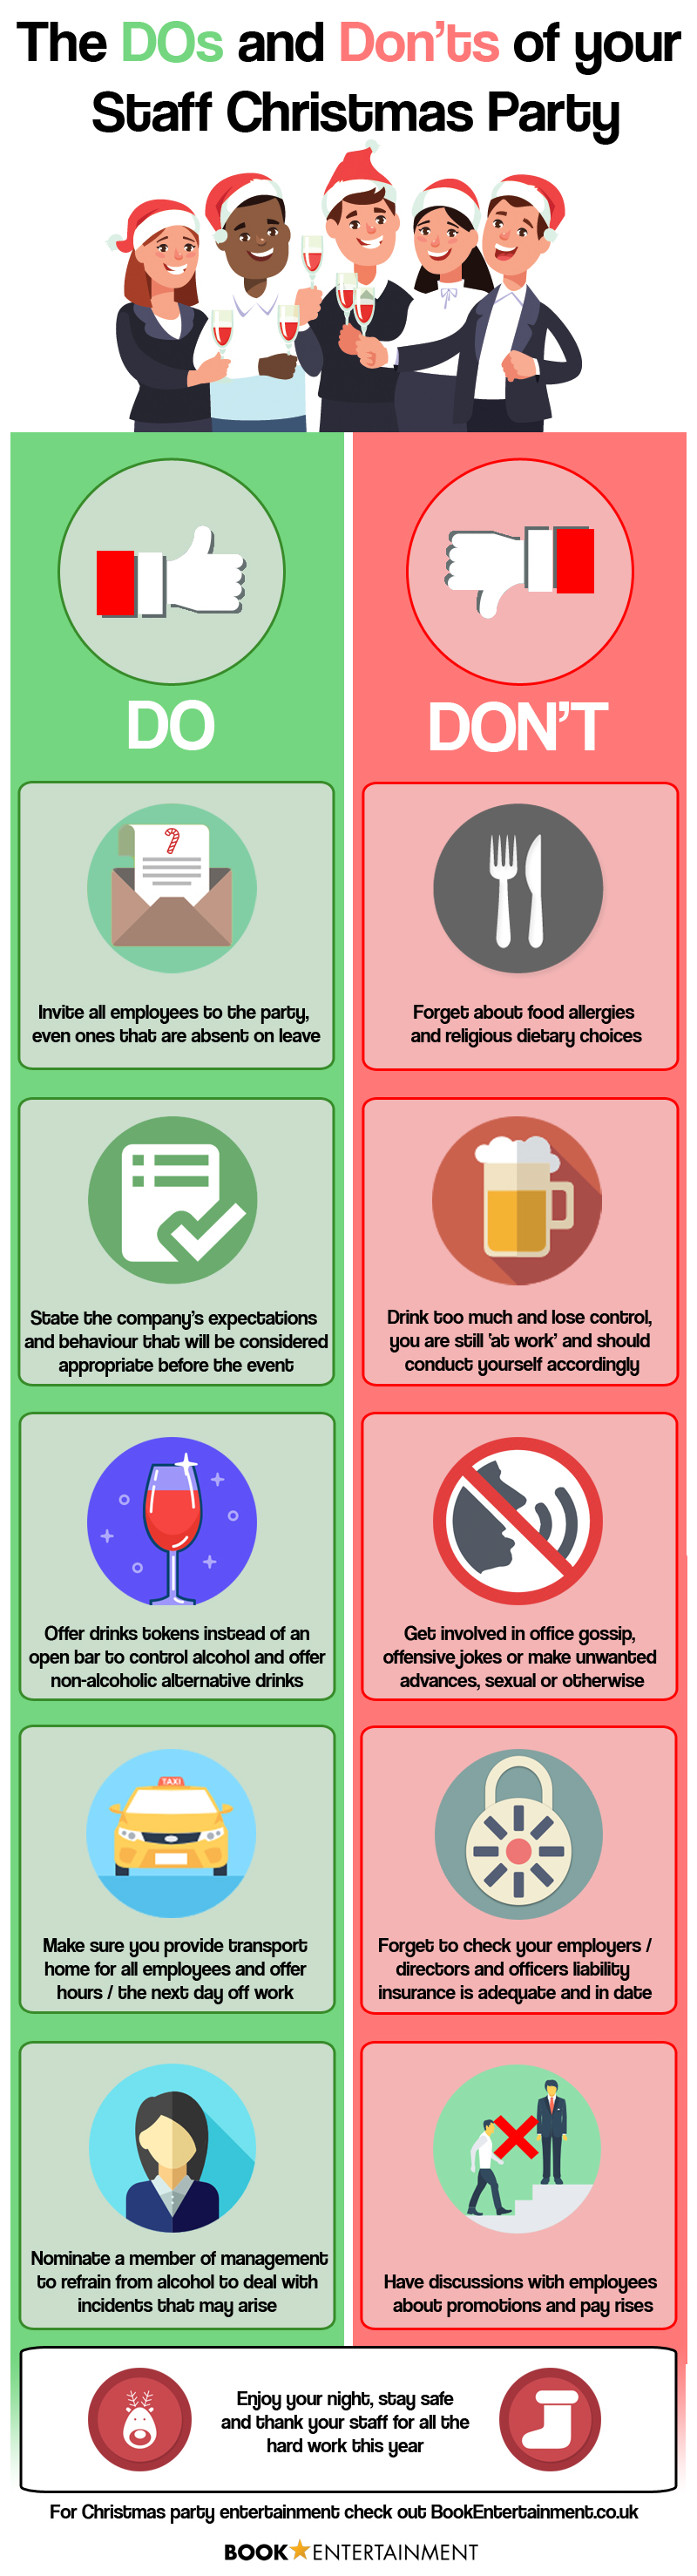 The Dos and Don'ts of your Staff Christmas Party Infographic